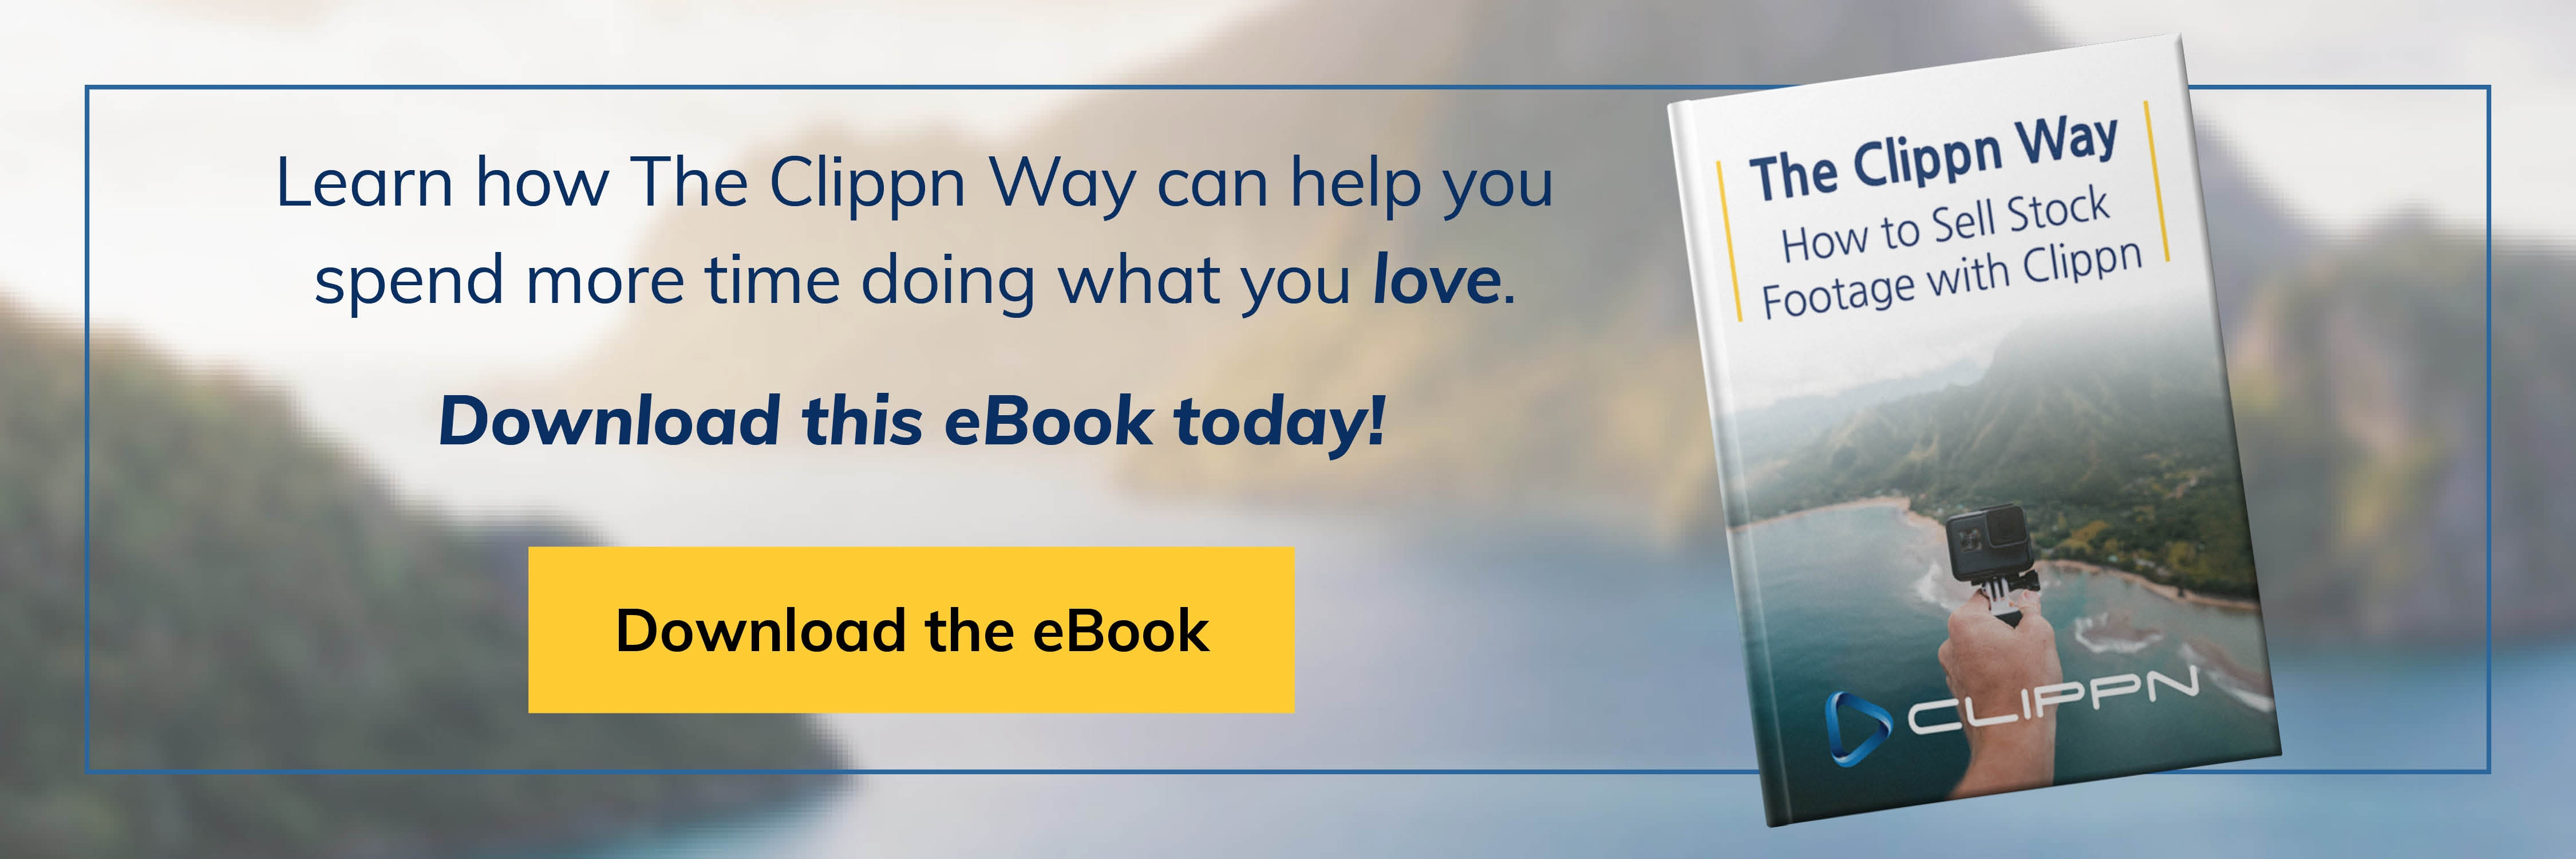 Download the eBook today!